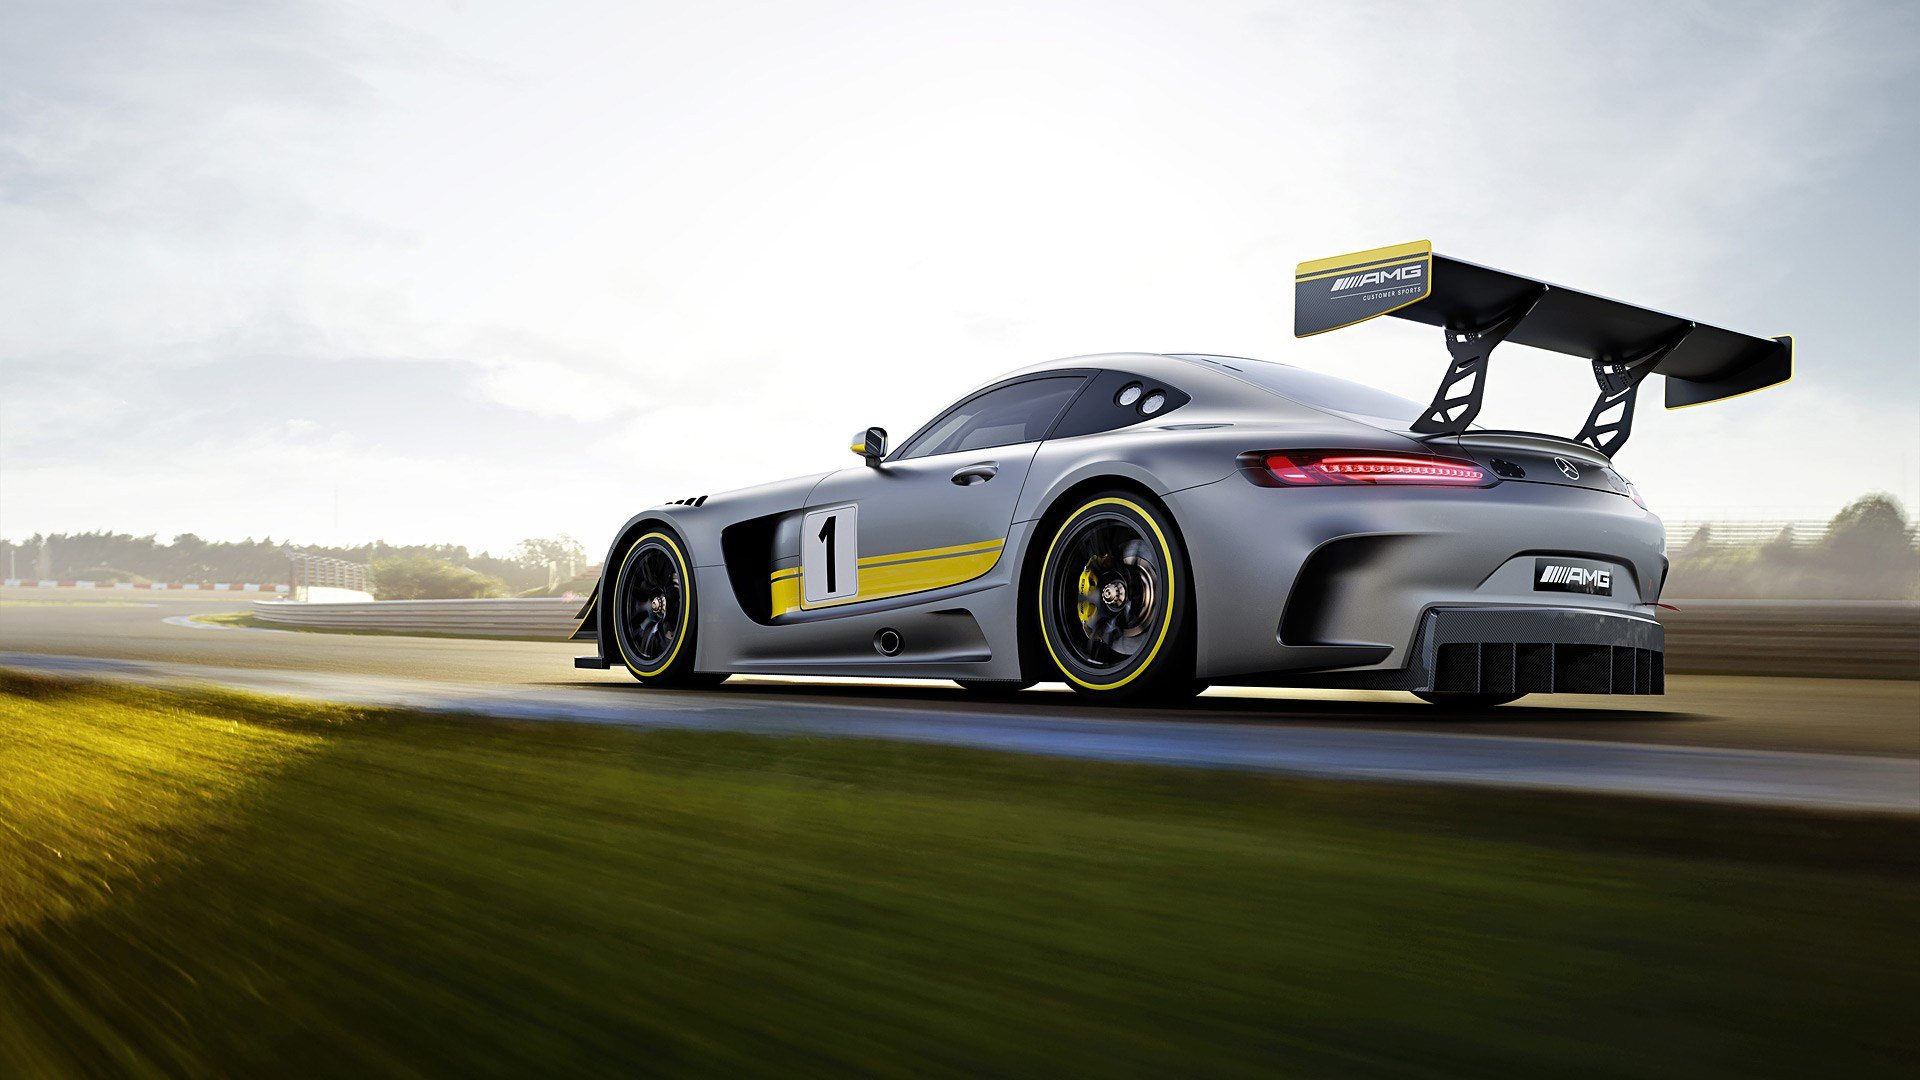 Latest 2015 Mercedes Amg Gt3 Wallpapers Hd Images Wsupercars Free Download